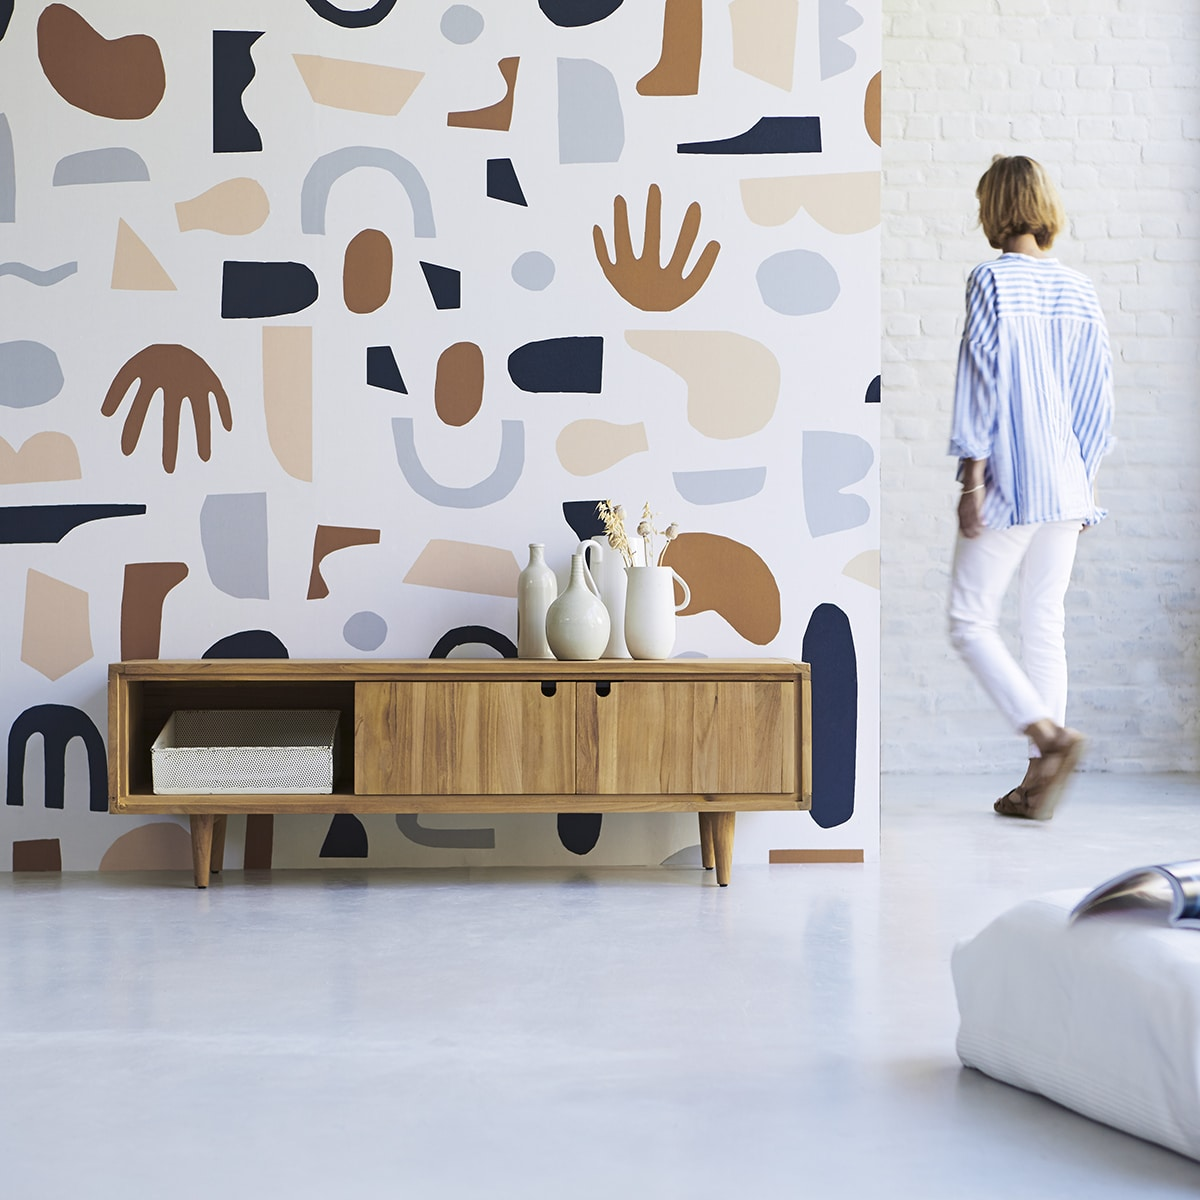 Wallpaper, a style statement